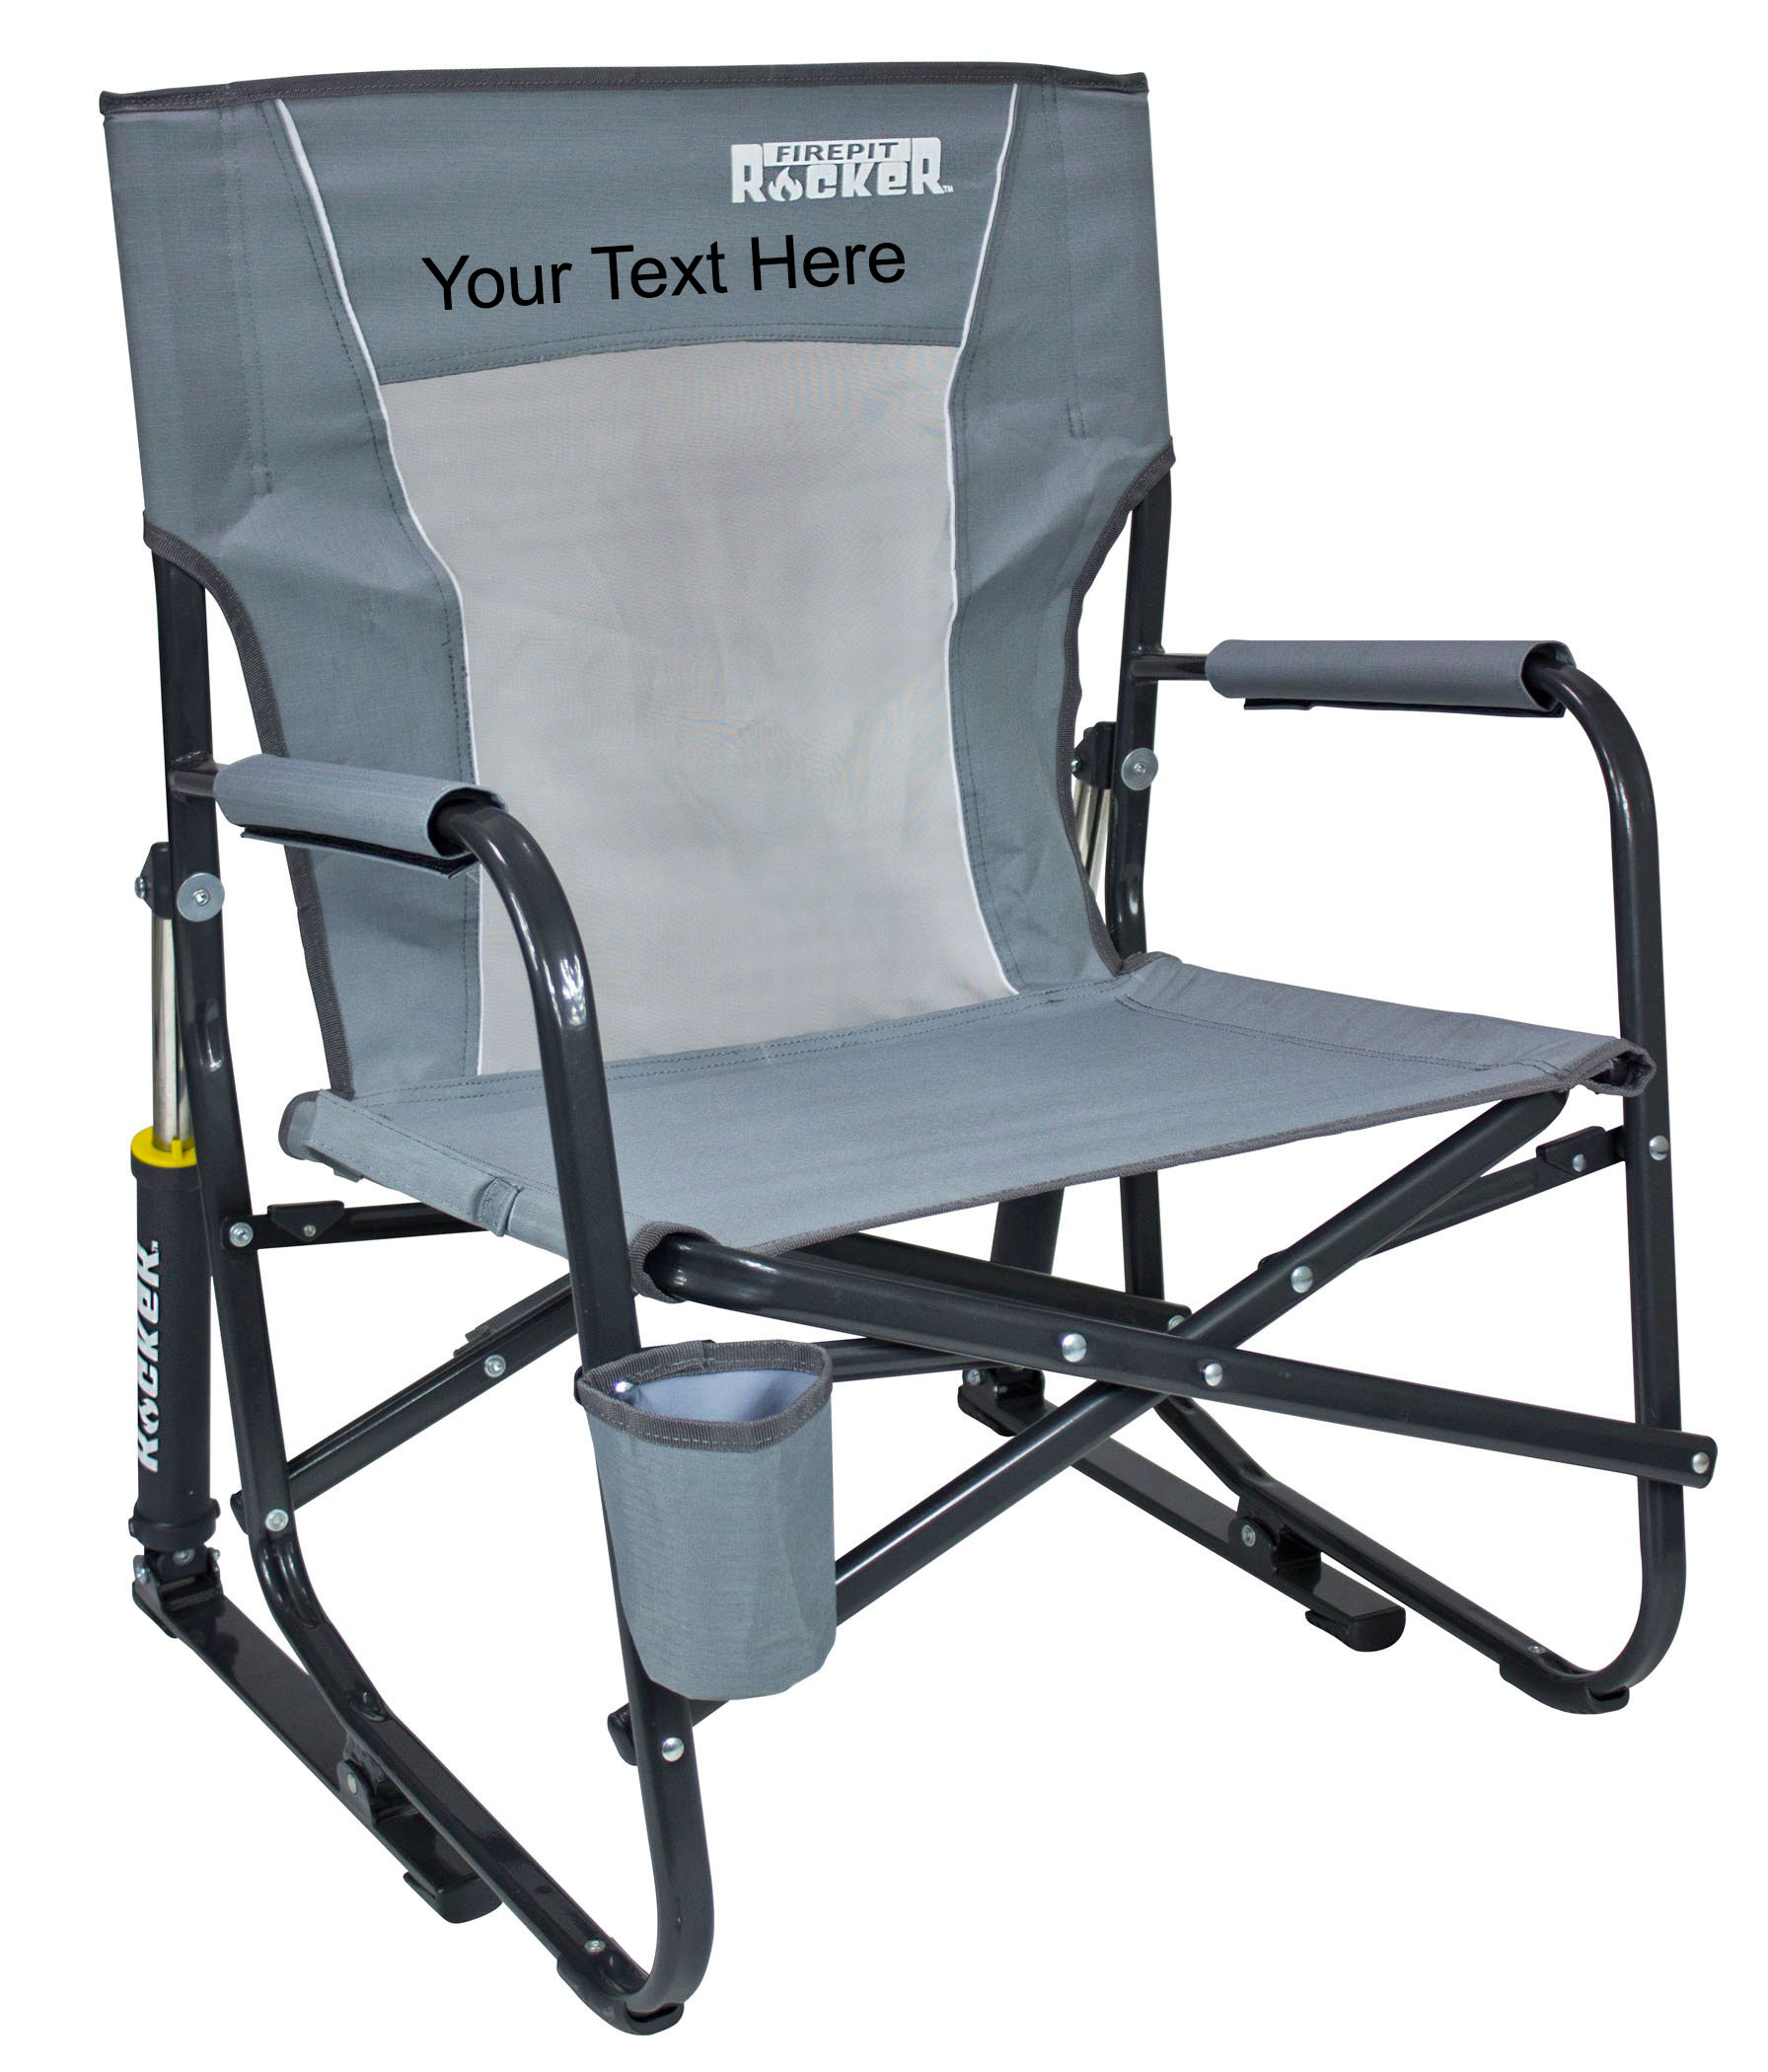 Personalized Imprinted Camping Chairs